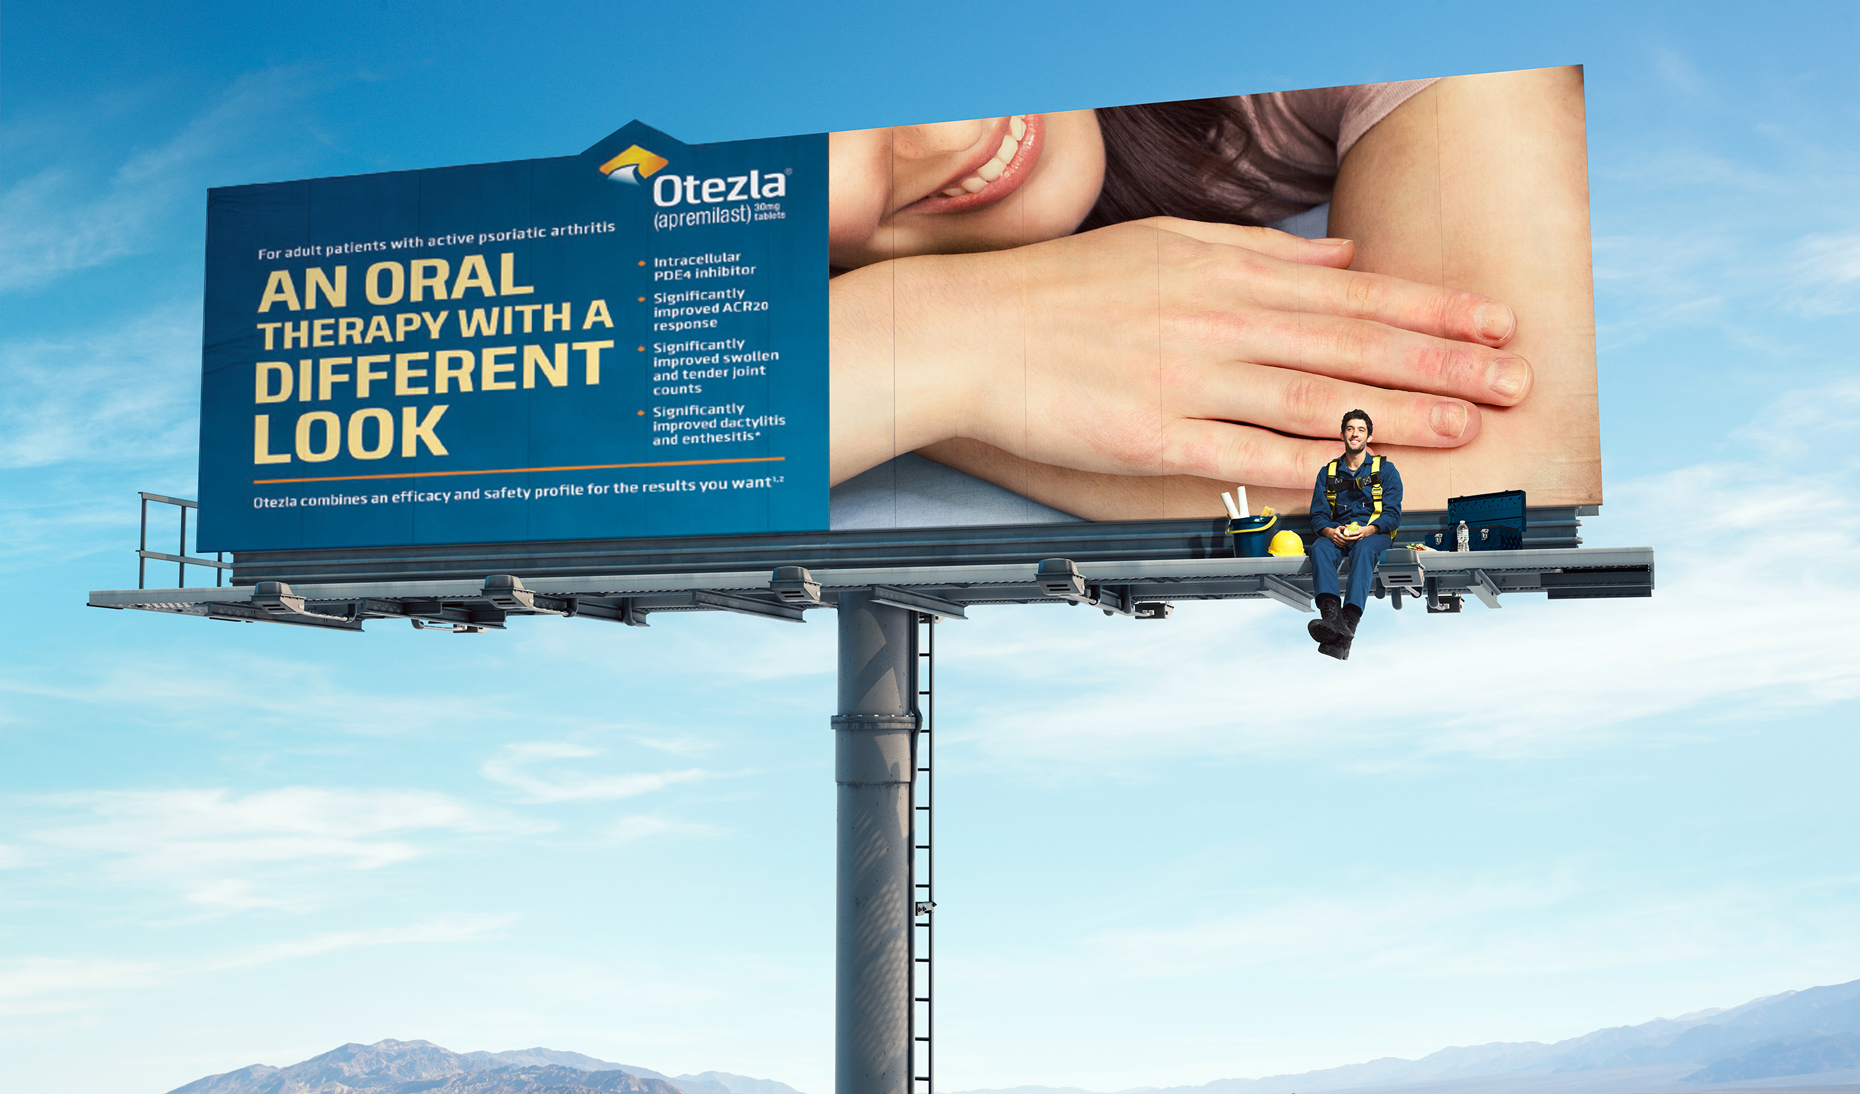 01_PALIO_OTEZLA_BILLBOARD_GLOBAL_HAND_SOLUTION_W1_F_3K-retouched